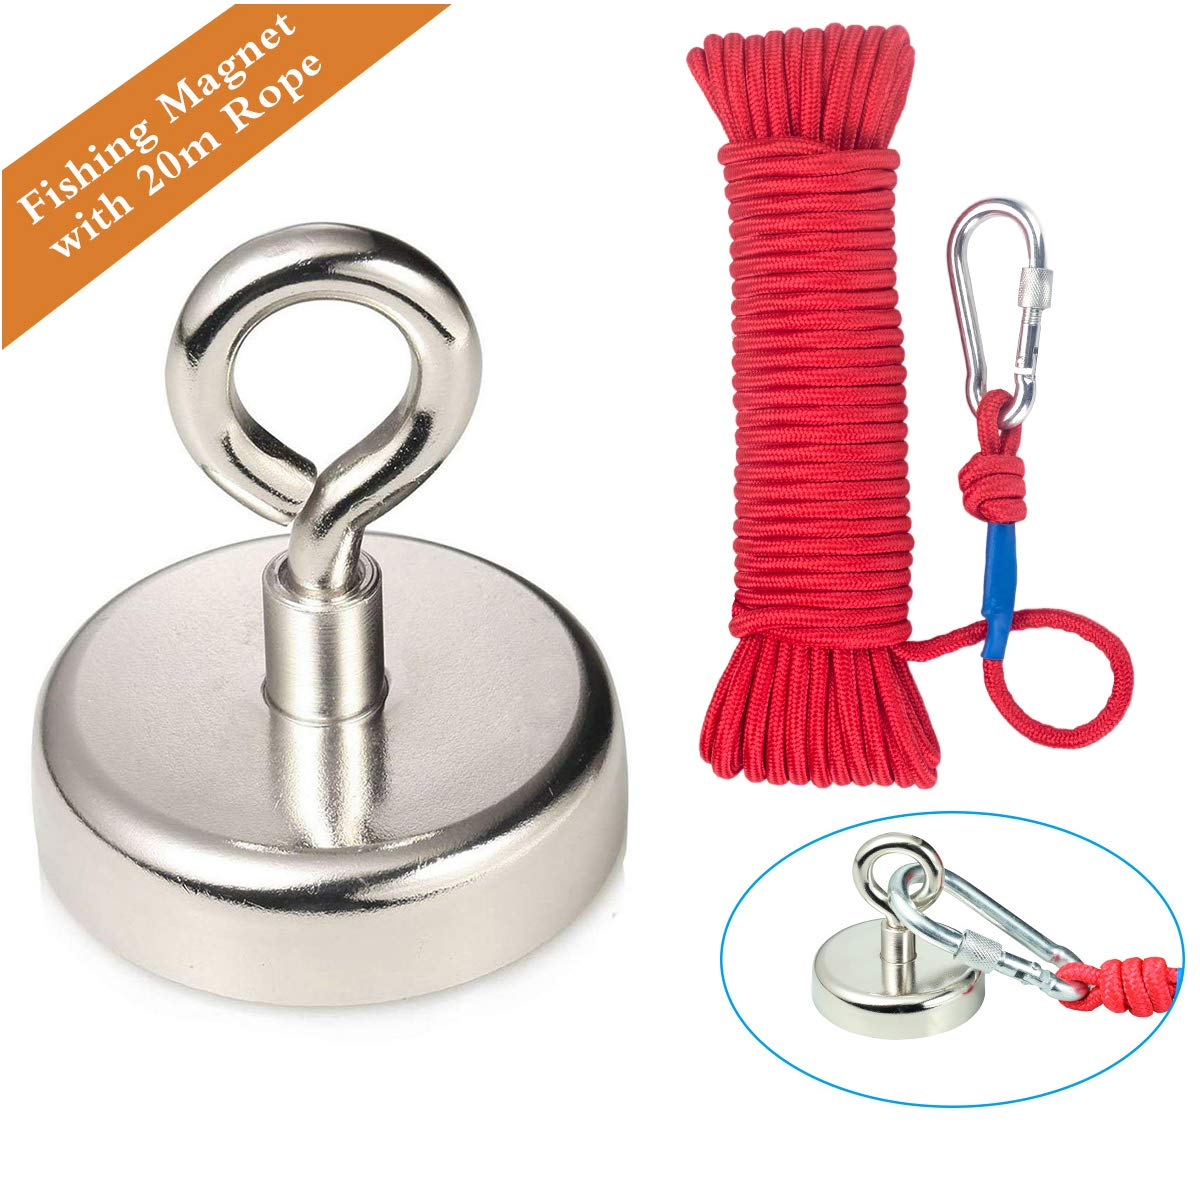 Neodymium Eyebolt Magnet,Diameter x 60mm Thick x 15mm, Wukong N52 Holding pull force 330LBS(150KG) Fishing clamping magnet and 6mm Braided Rope x 66ft